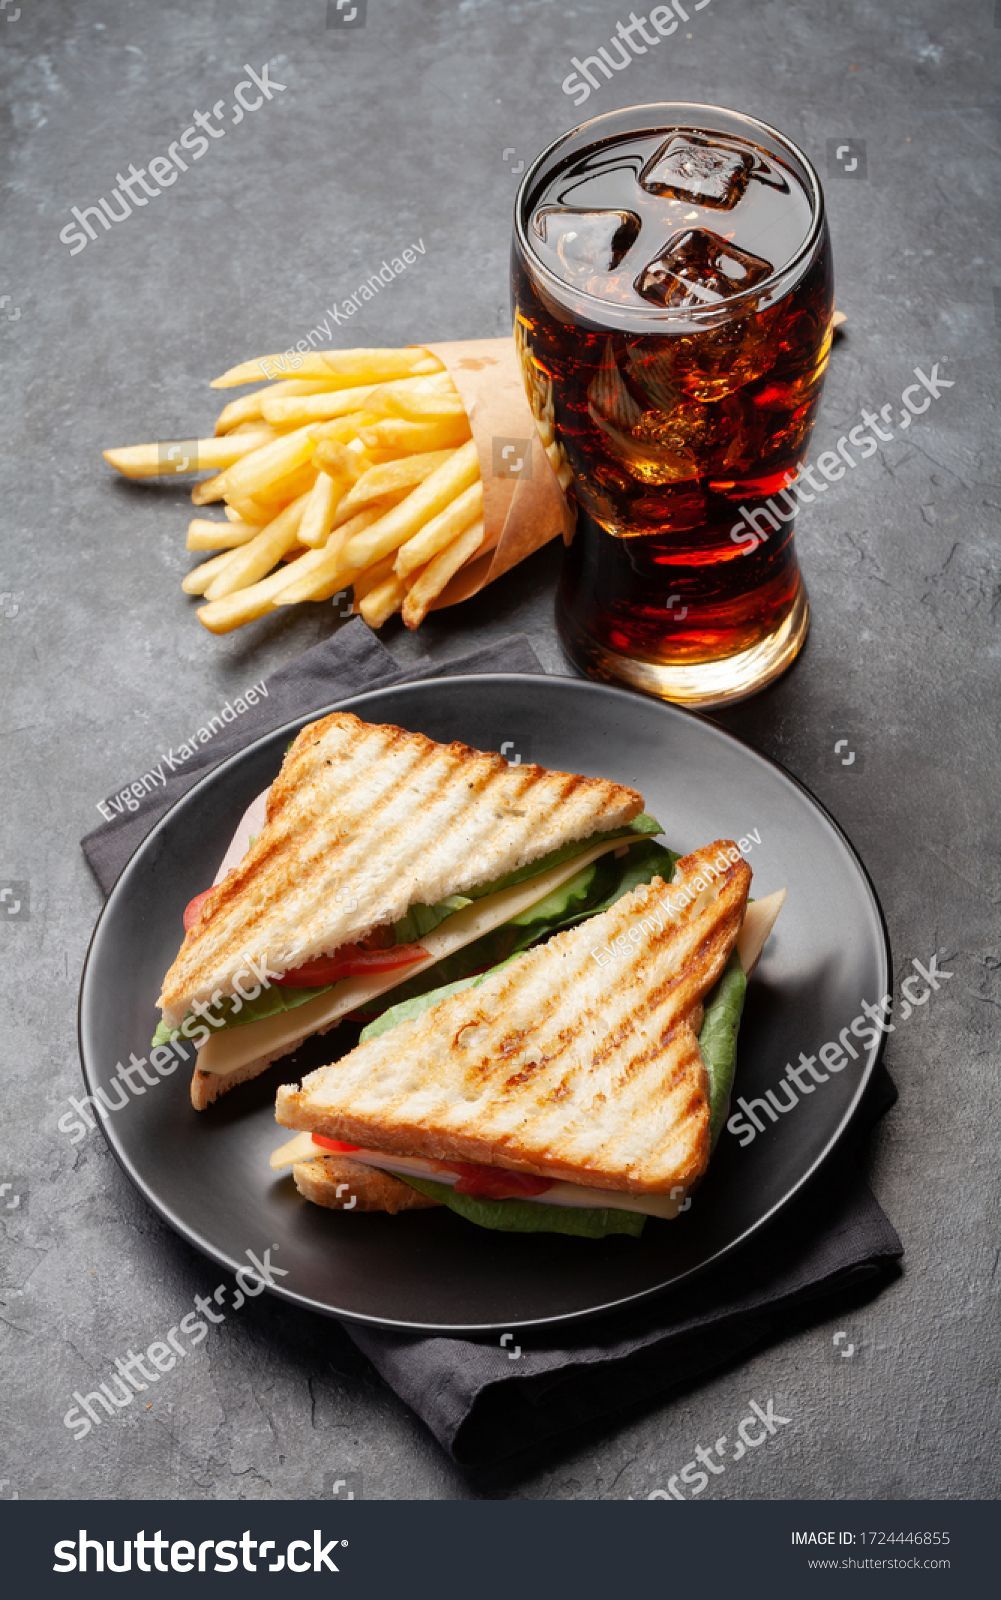 Club Sandwich Potato Fries Chips And Glass Of Cola Drink With Ice Fast Food Take Away Ad Sponsored Fries Chips Potato In 2020 Club Sandwich Fried Potatoes Food